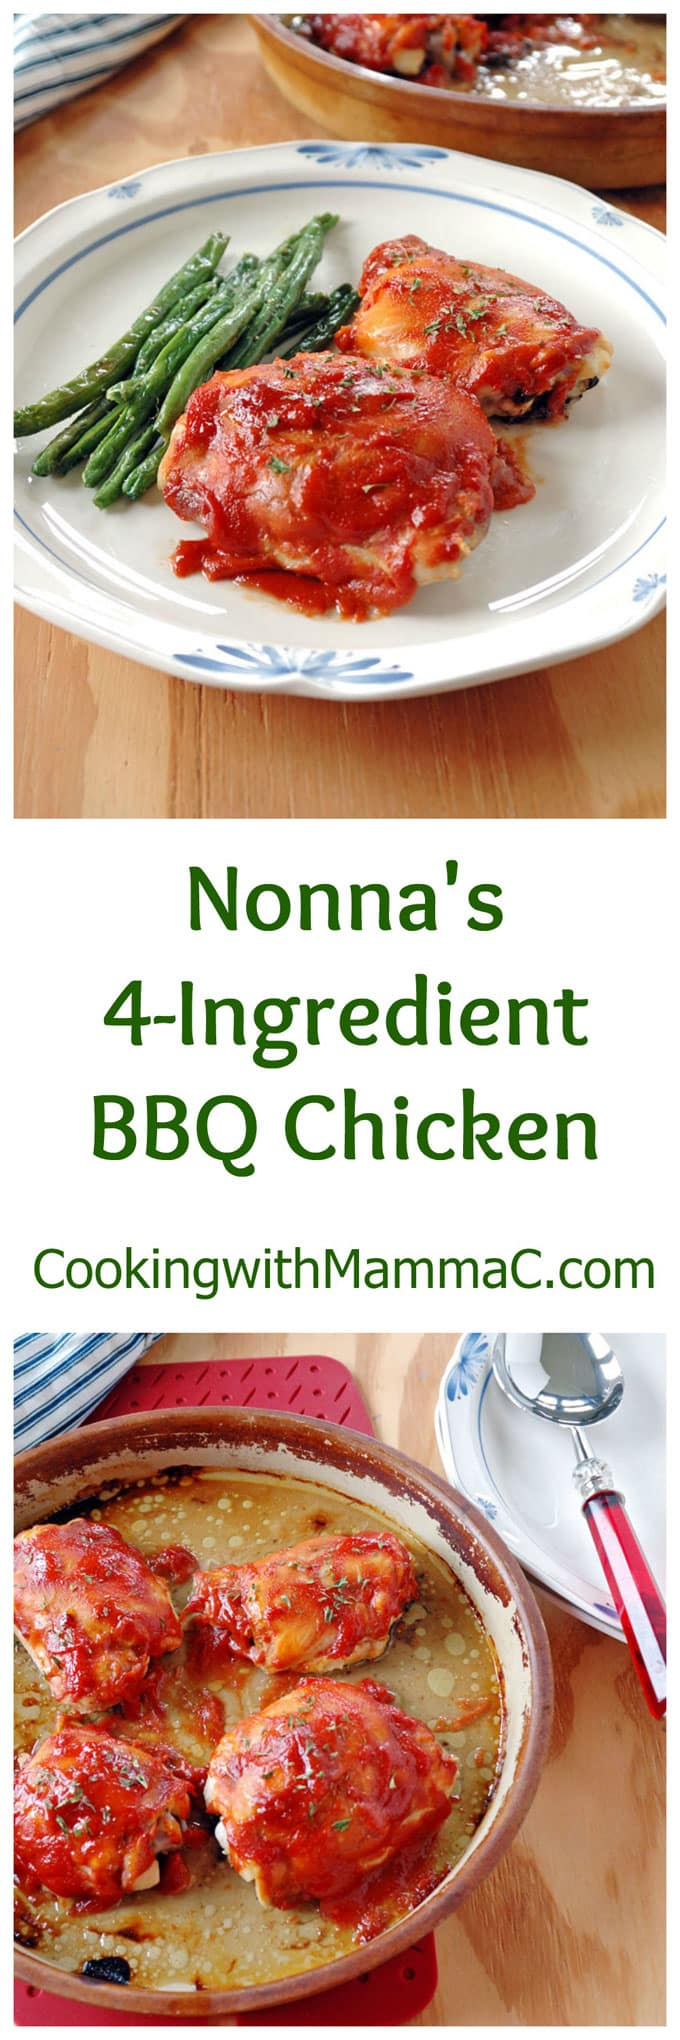 Nonna's 4-Ingredient BBQ Chicken is so easy and delicious! Just 5 minutes of prep and then bake for an hour. Gluten free.